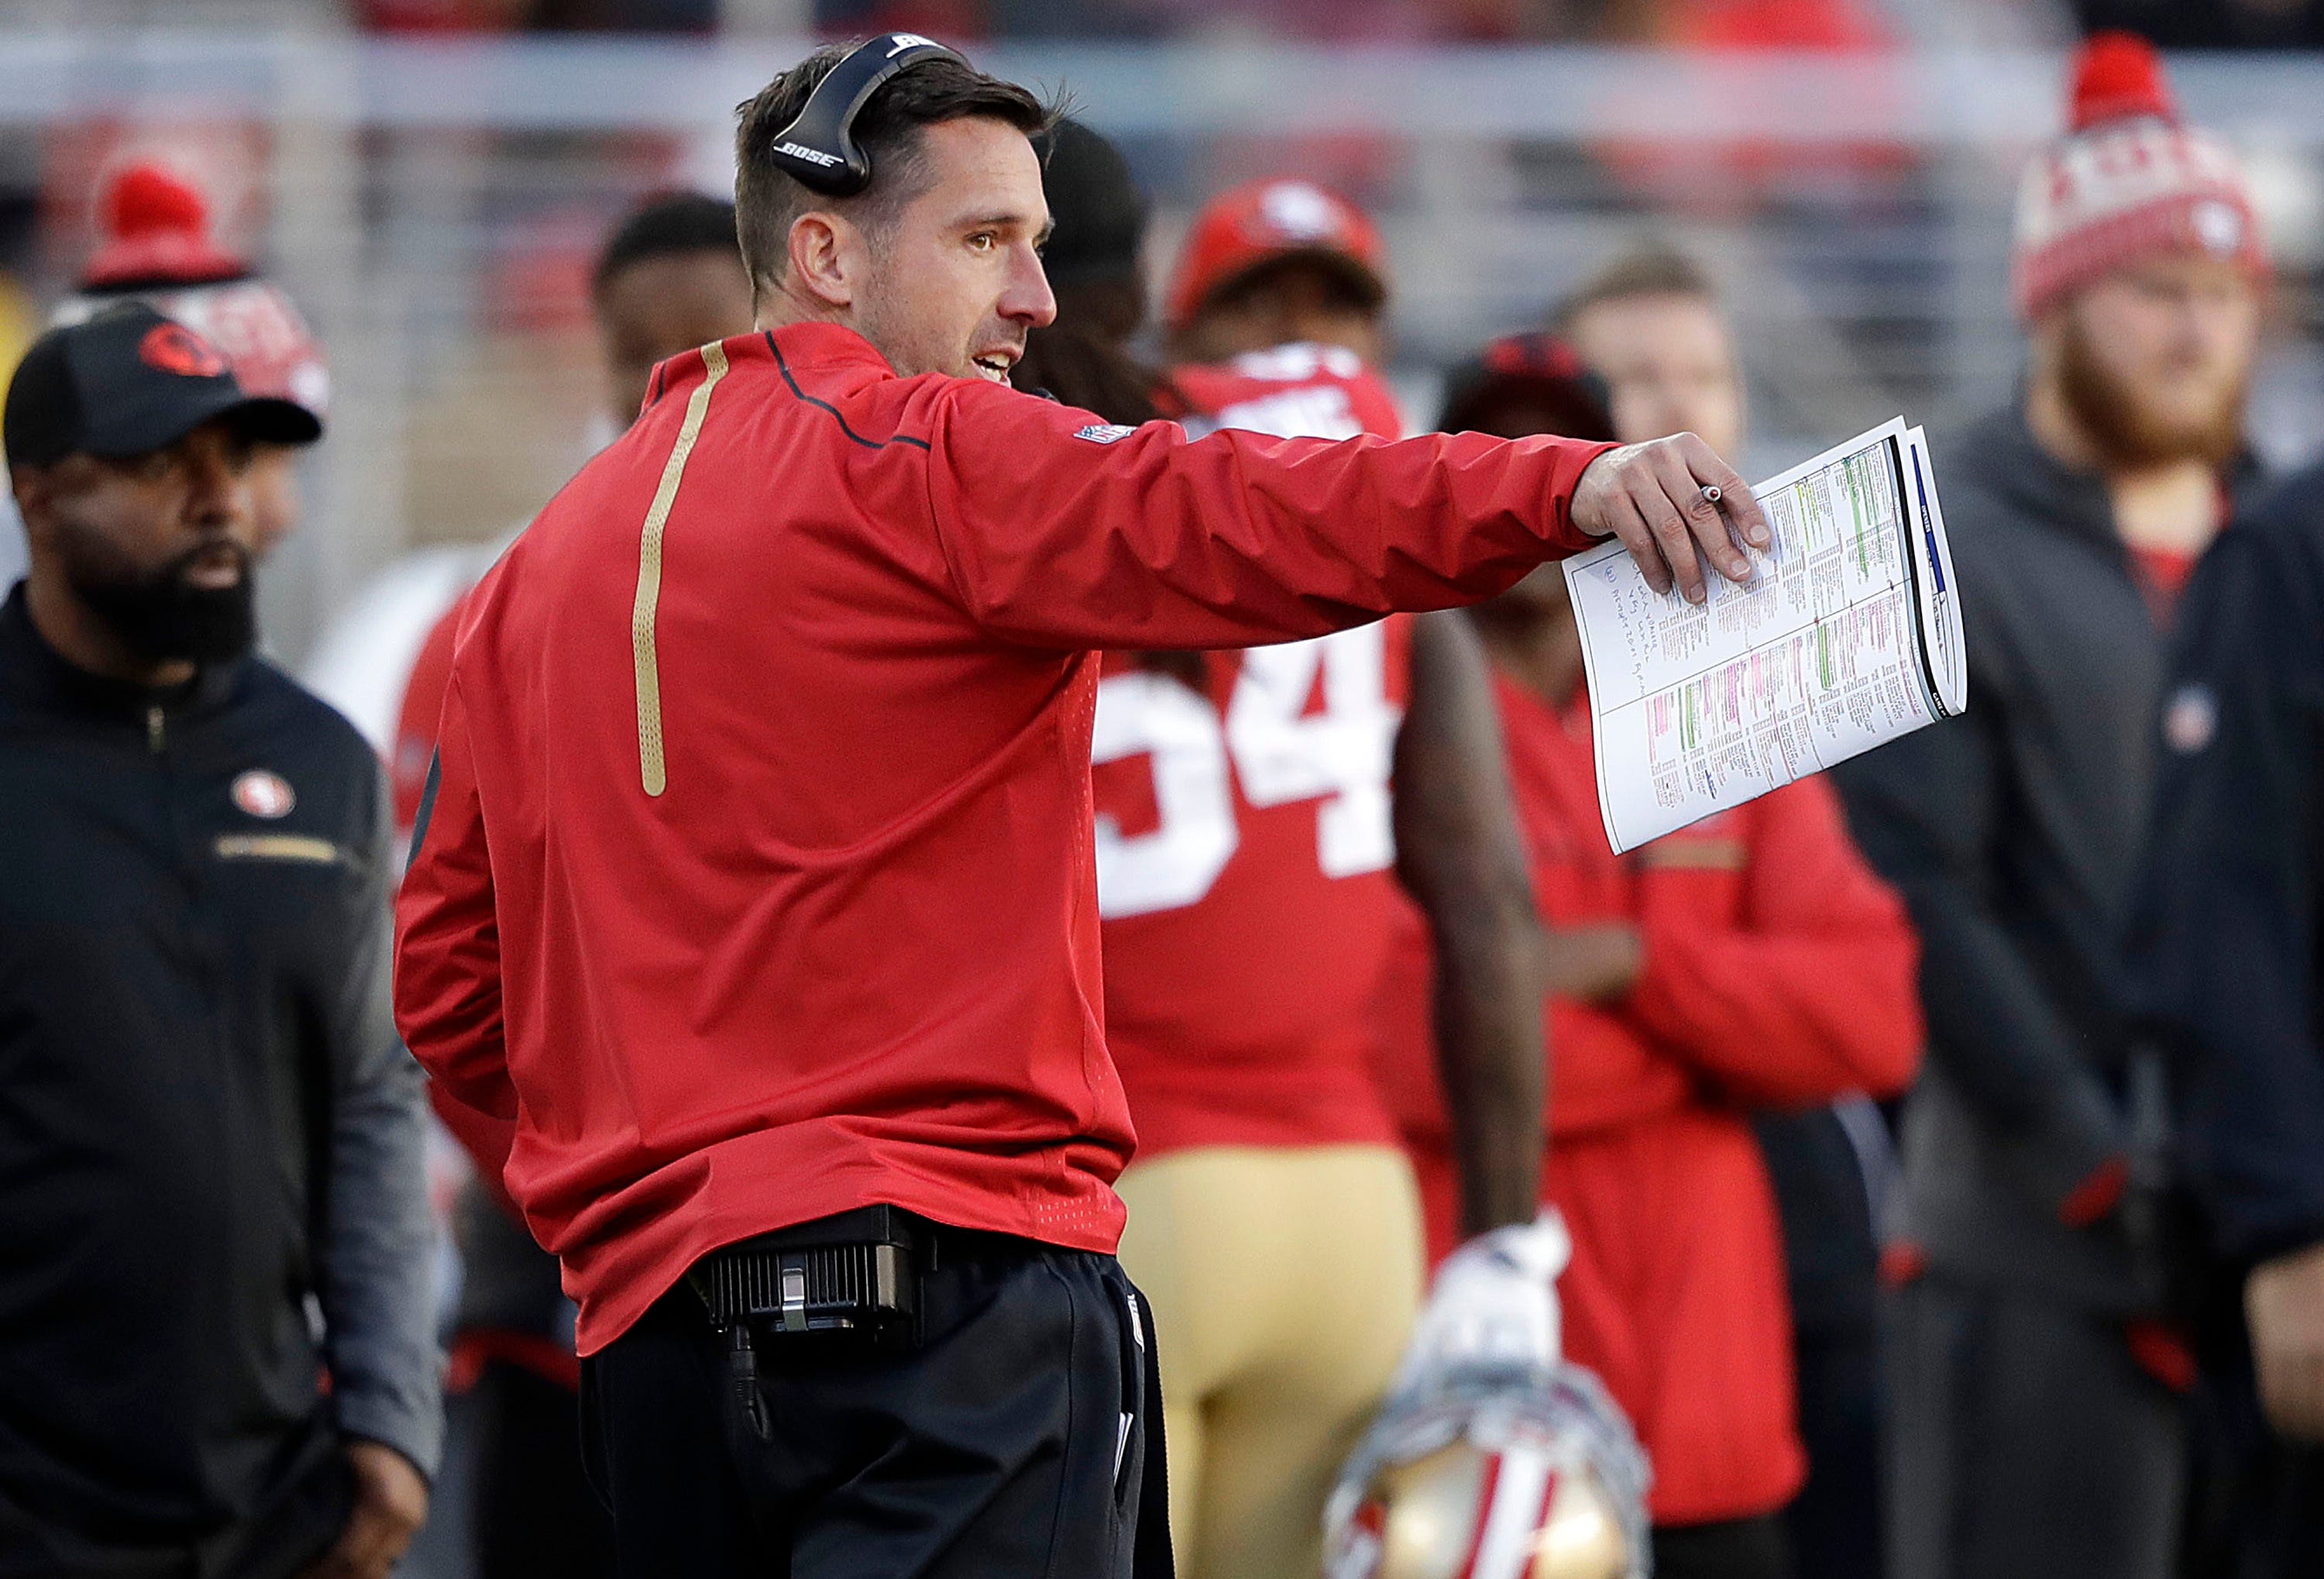 Winless Shanahan evaluating how 49ers handle adversity